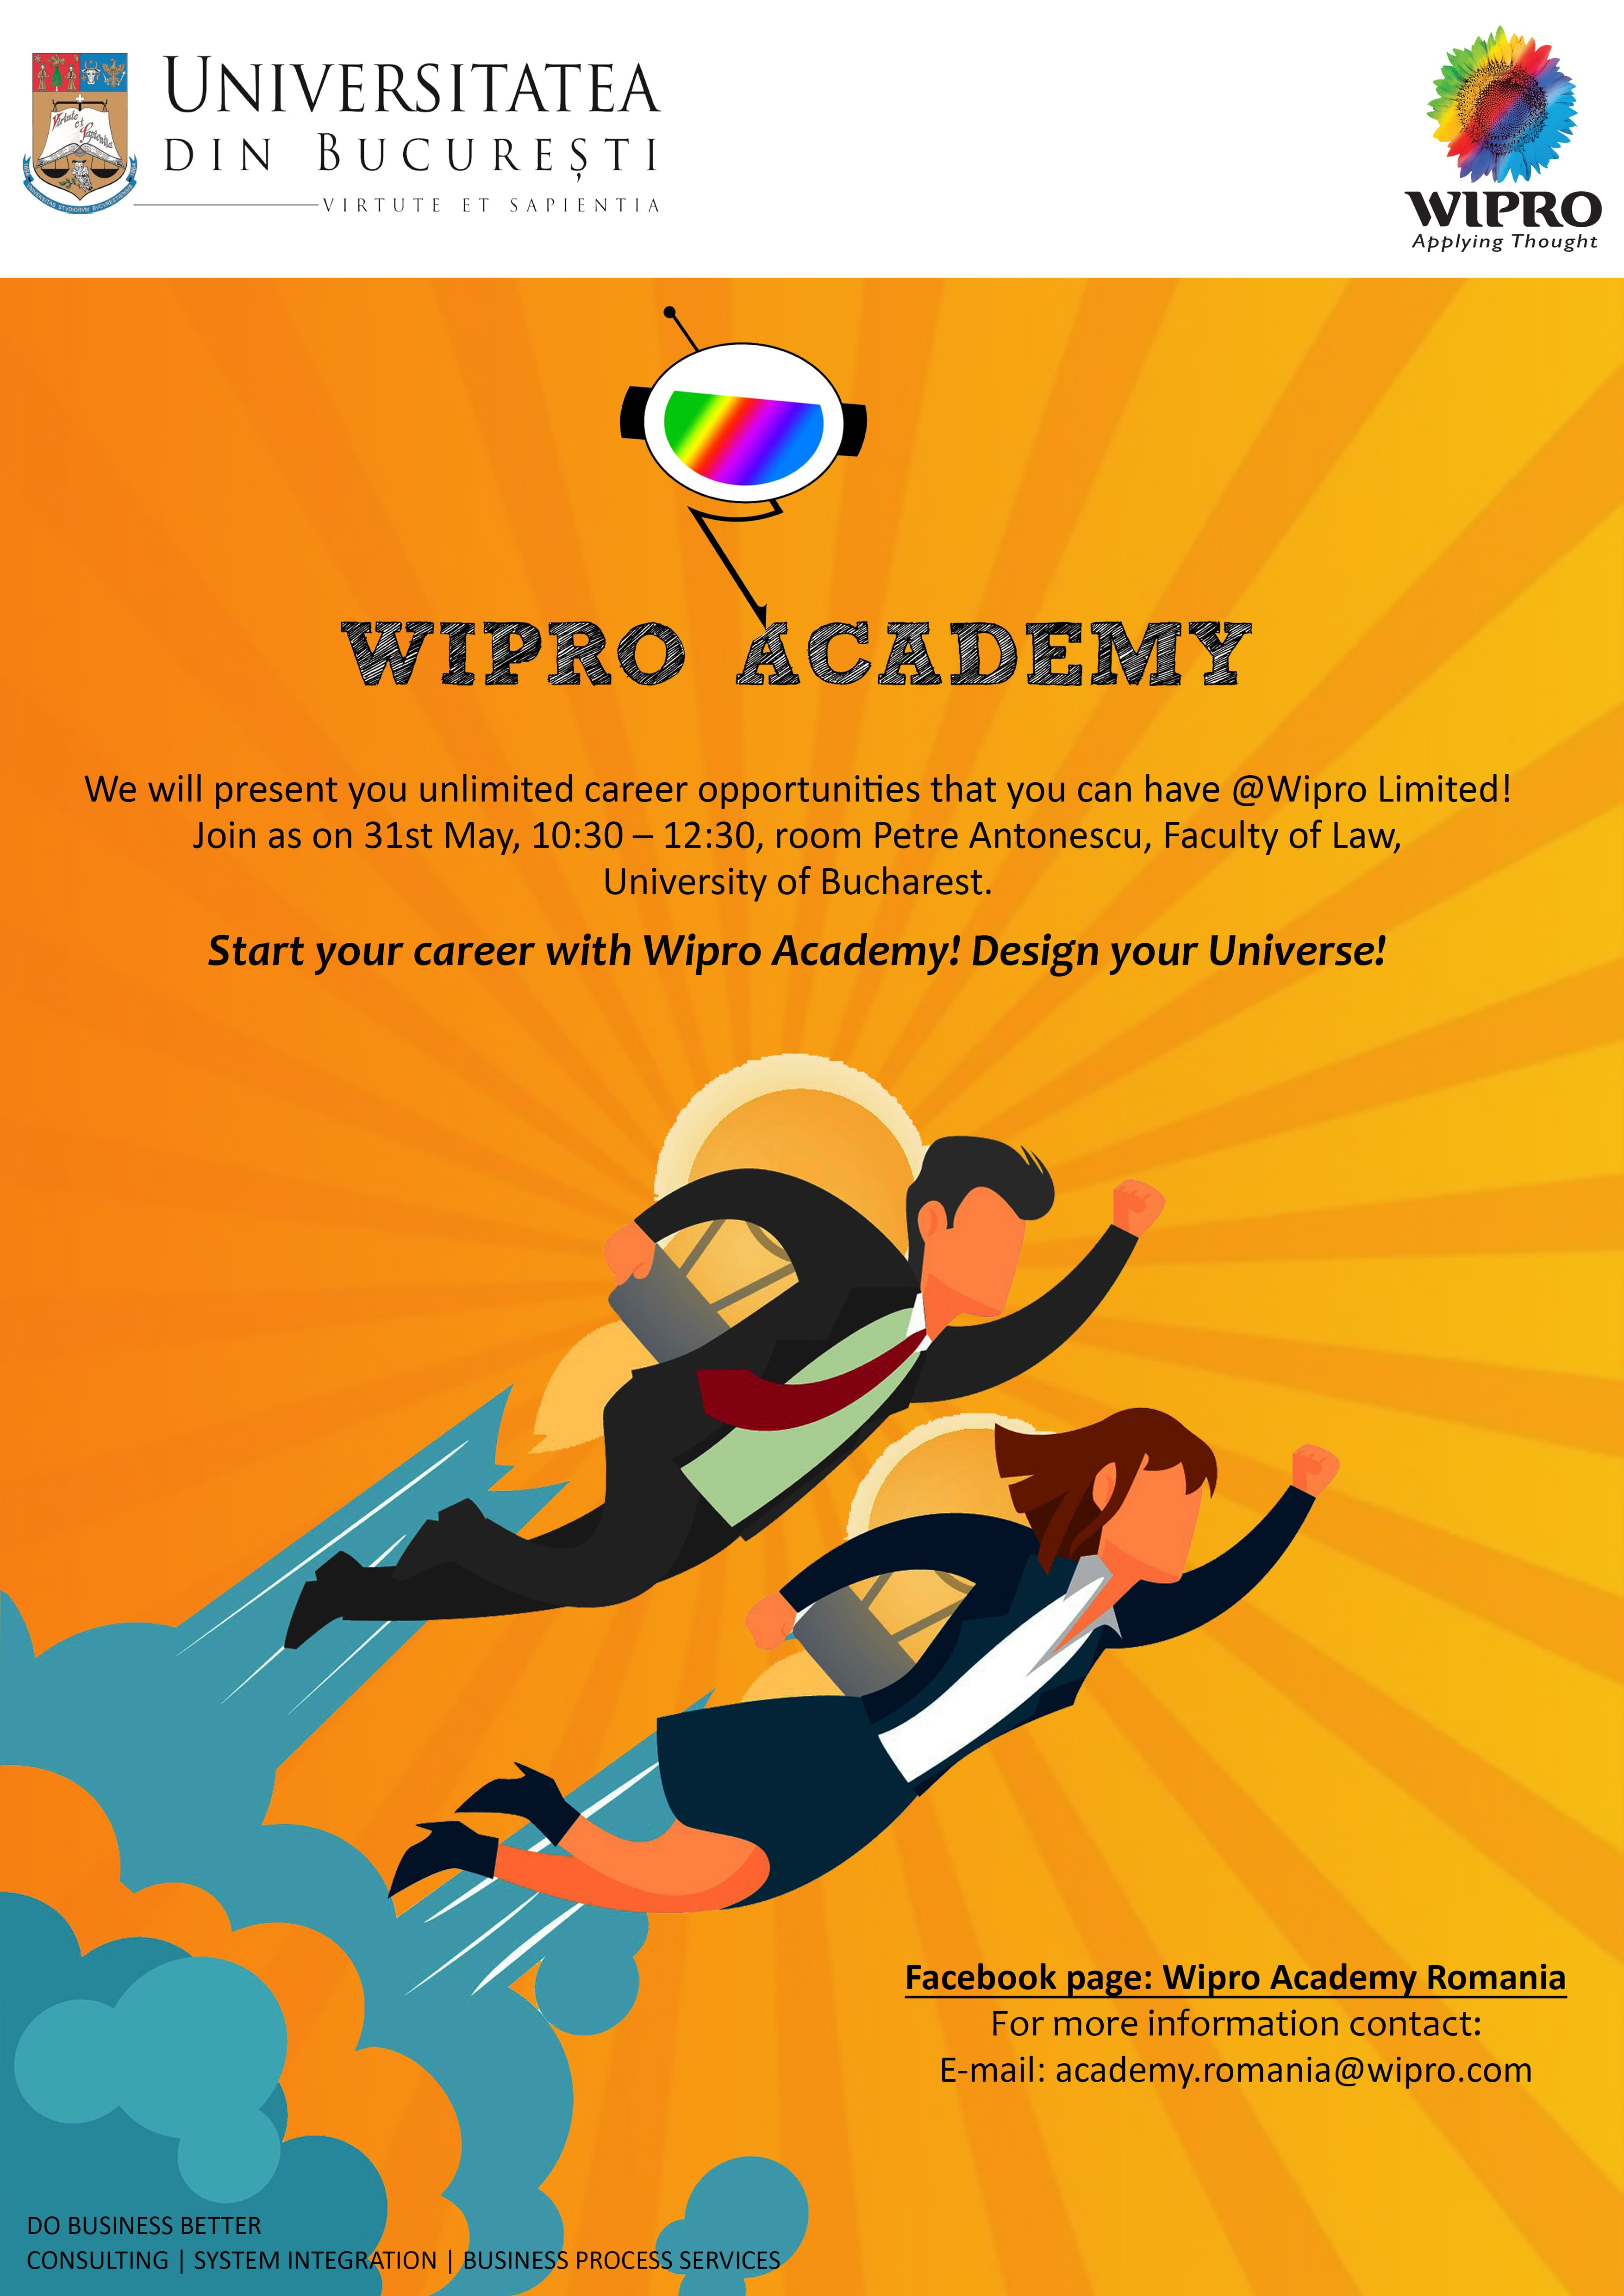 Start your career with Wipro Academy!